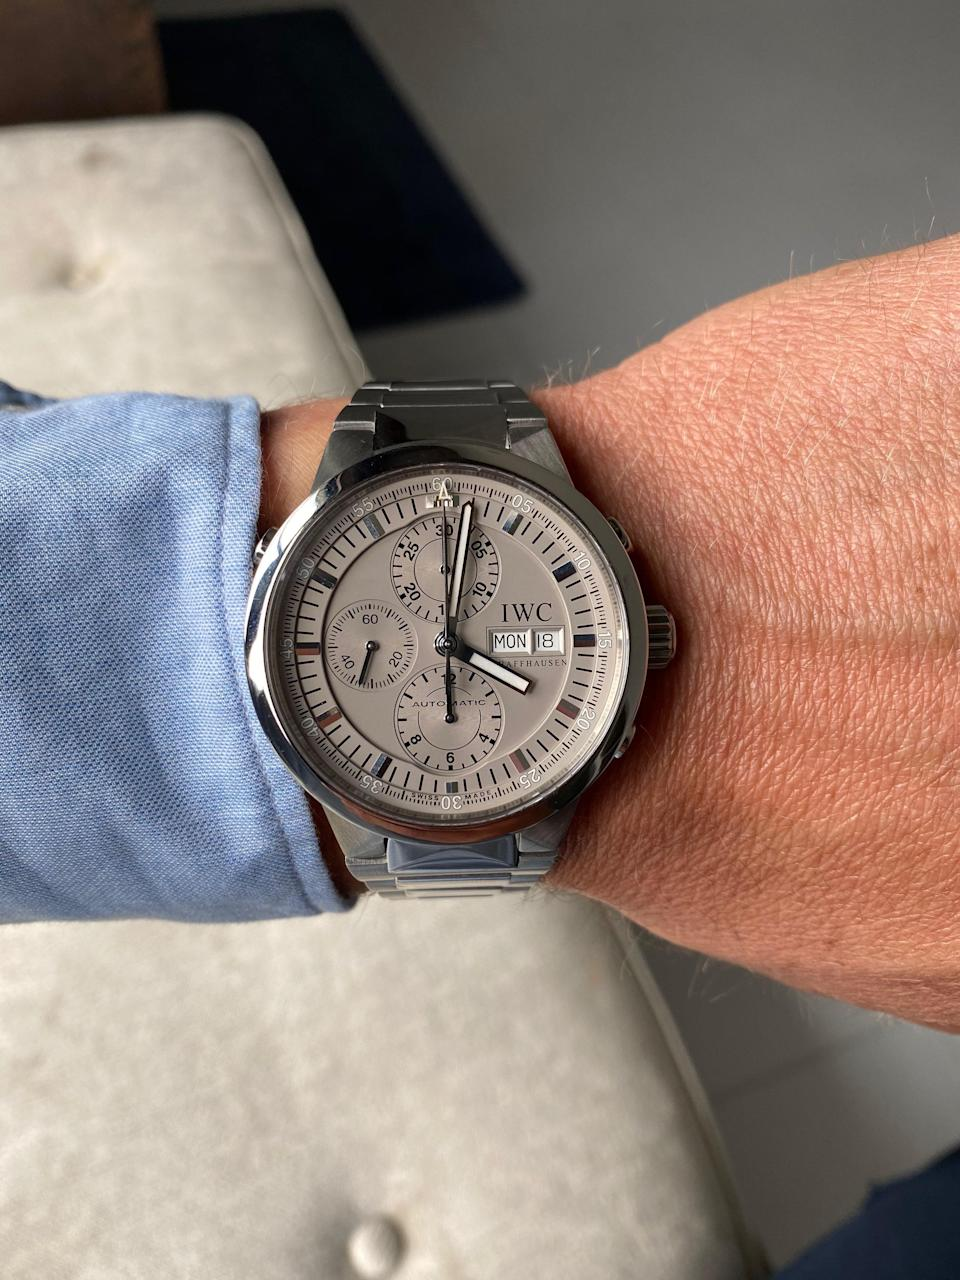 """<div class=""""caption""""> The IWC GST Chronograph Rattrapante—the first big watch purchase Brady made. </div>"""